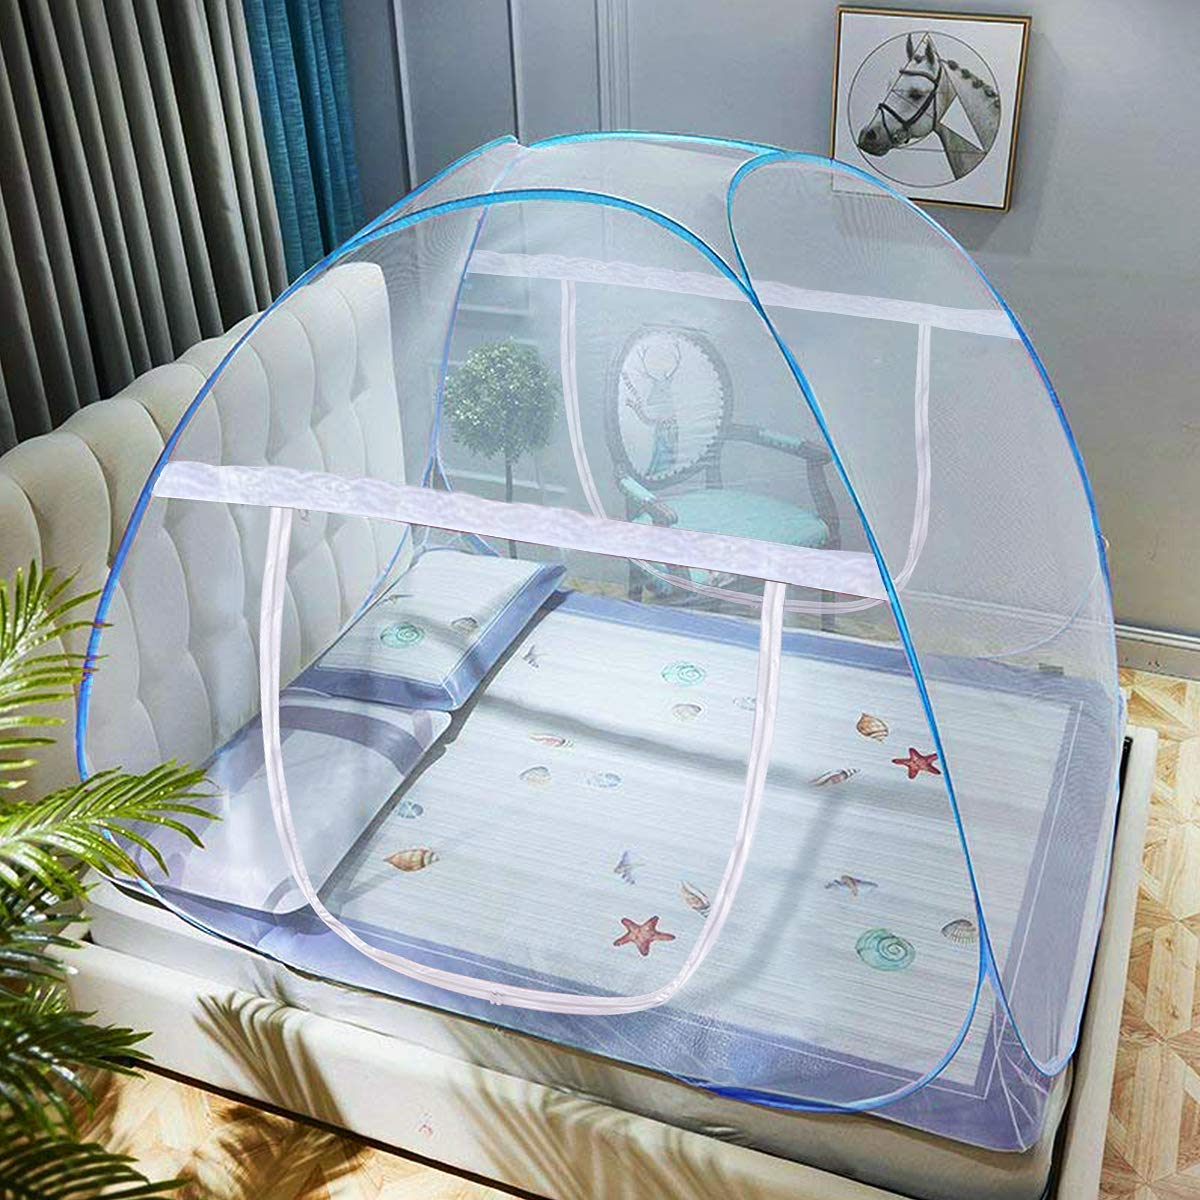 P op-Up Mosquito Net Tent Bed Net Anti Mosquito Bites Folding Design with Net Bottom for Babys Adults Trip 79 x71x59 inch